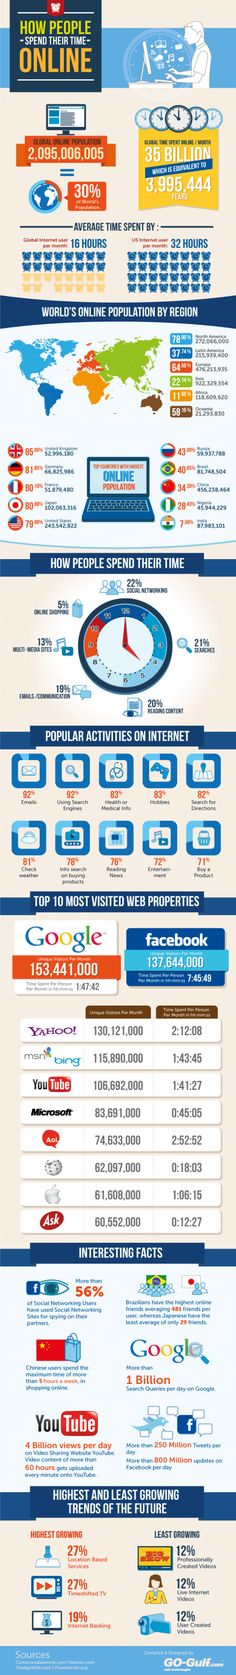 • 56% social network users use social media to spy on their partners.  • India ranks #10 in terms of online population.  • There are 800 million updates on facebook per day.    Check out this infographic for more interesting online facts.